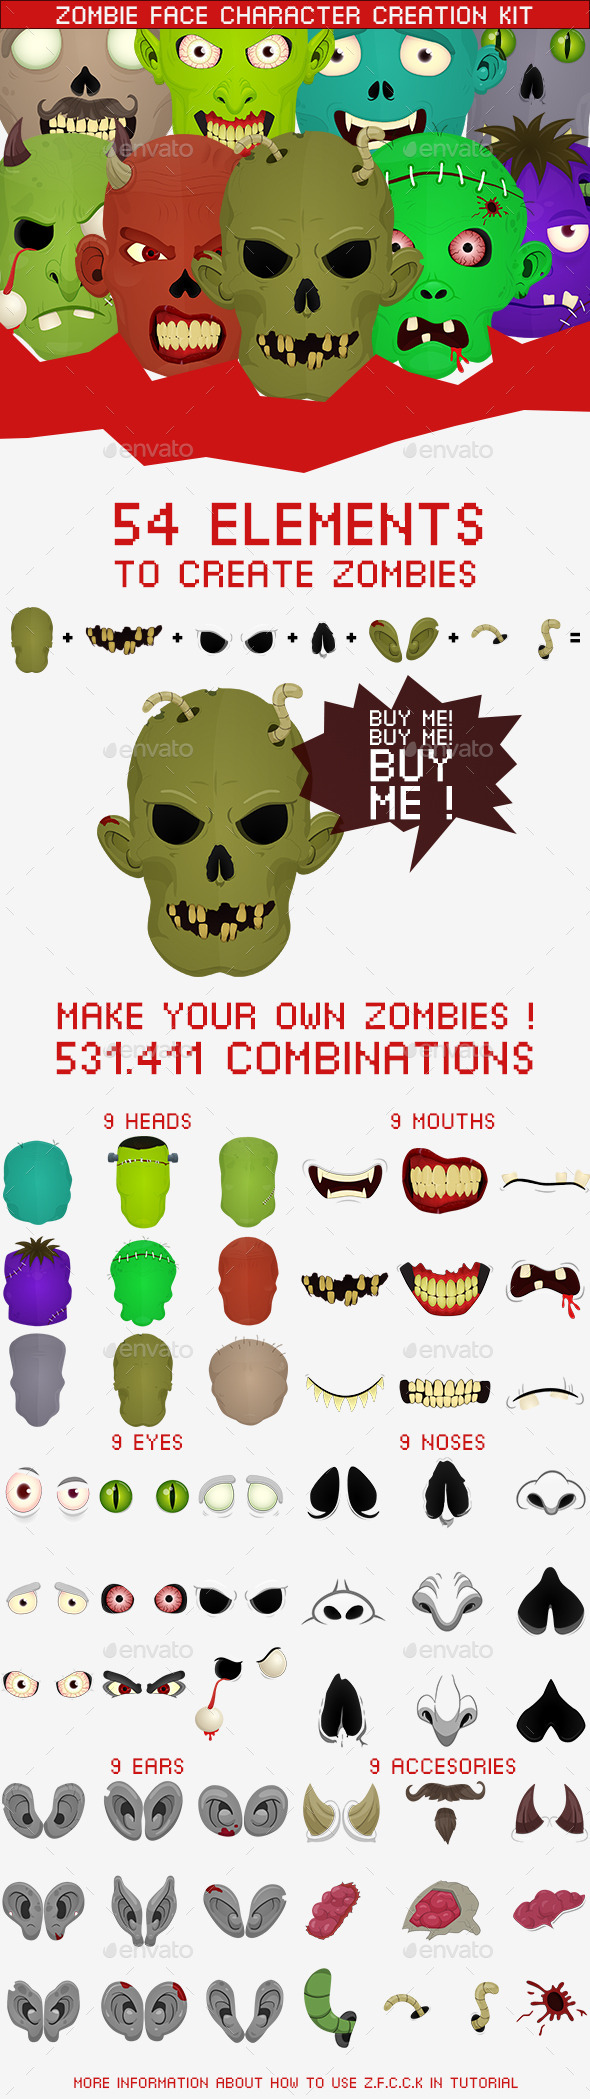 GraphicRiver Zombie Face Character Creation Kit 9357953